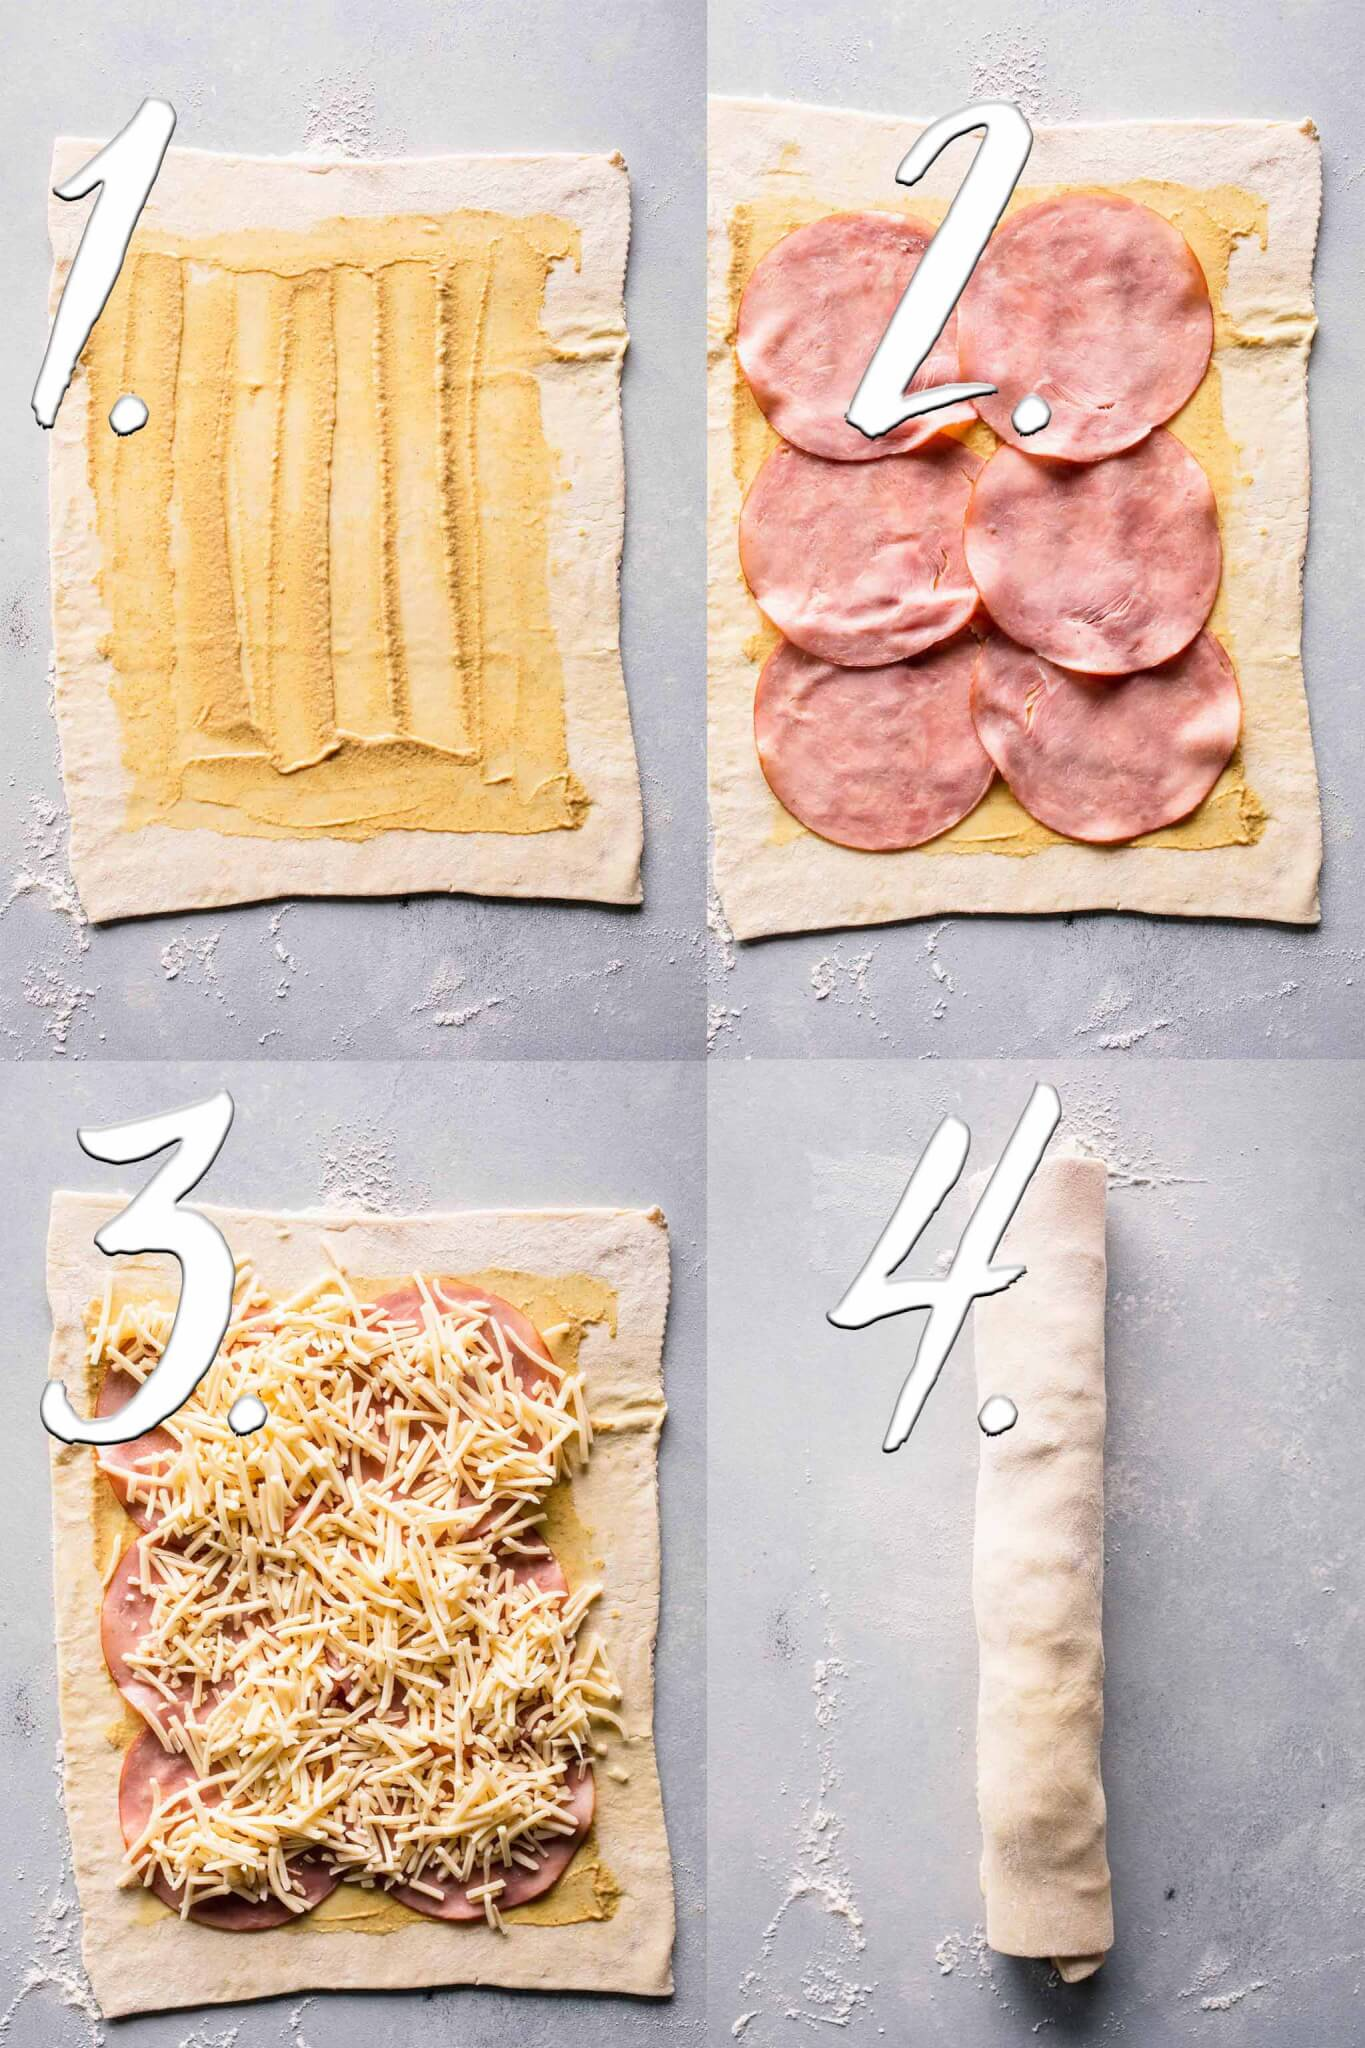 Steps diagram for making ham & cheese pinwheels.